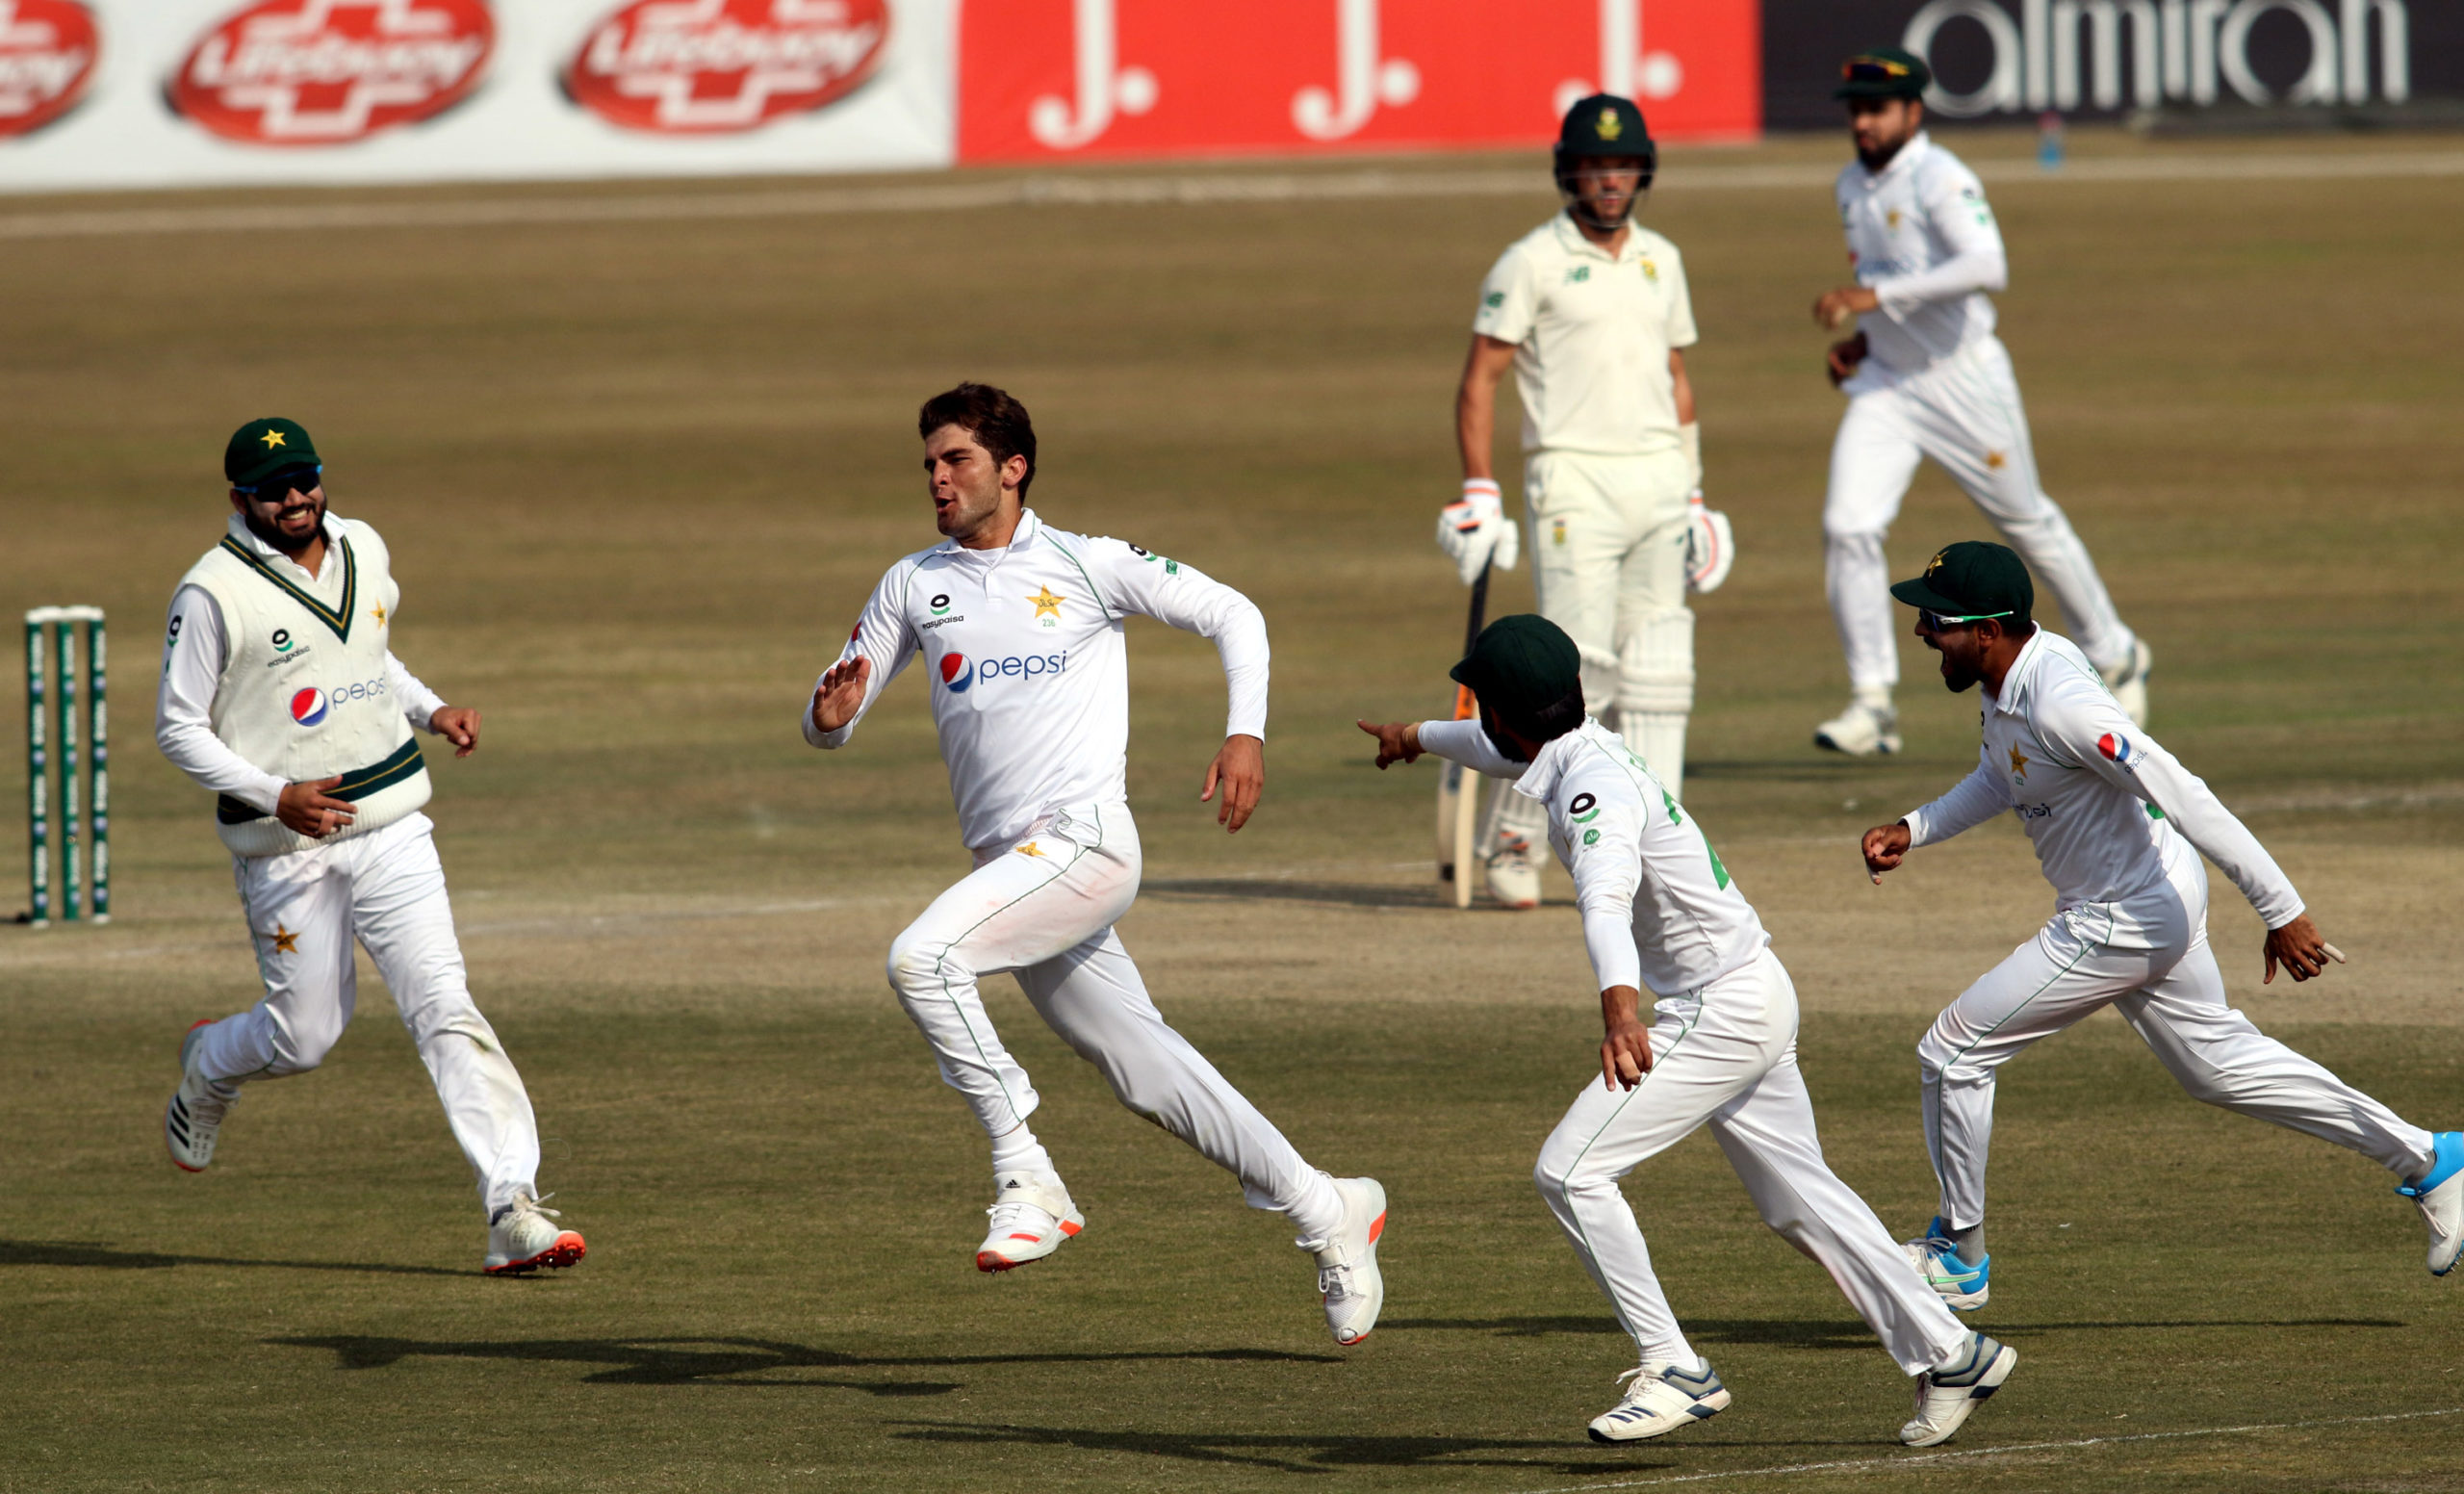 DM168 SPORT: Pakistan dreads becoming a no-go area again after New Zealand and England cancel tours